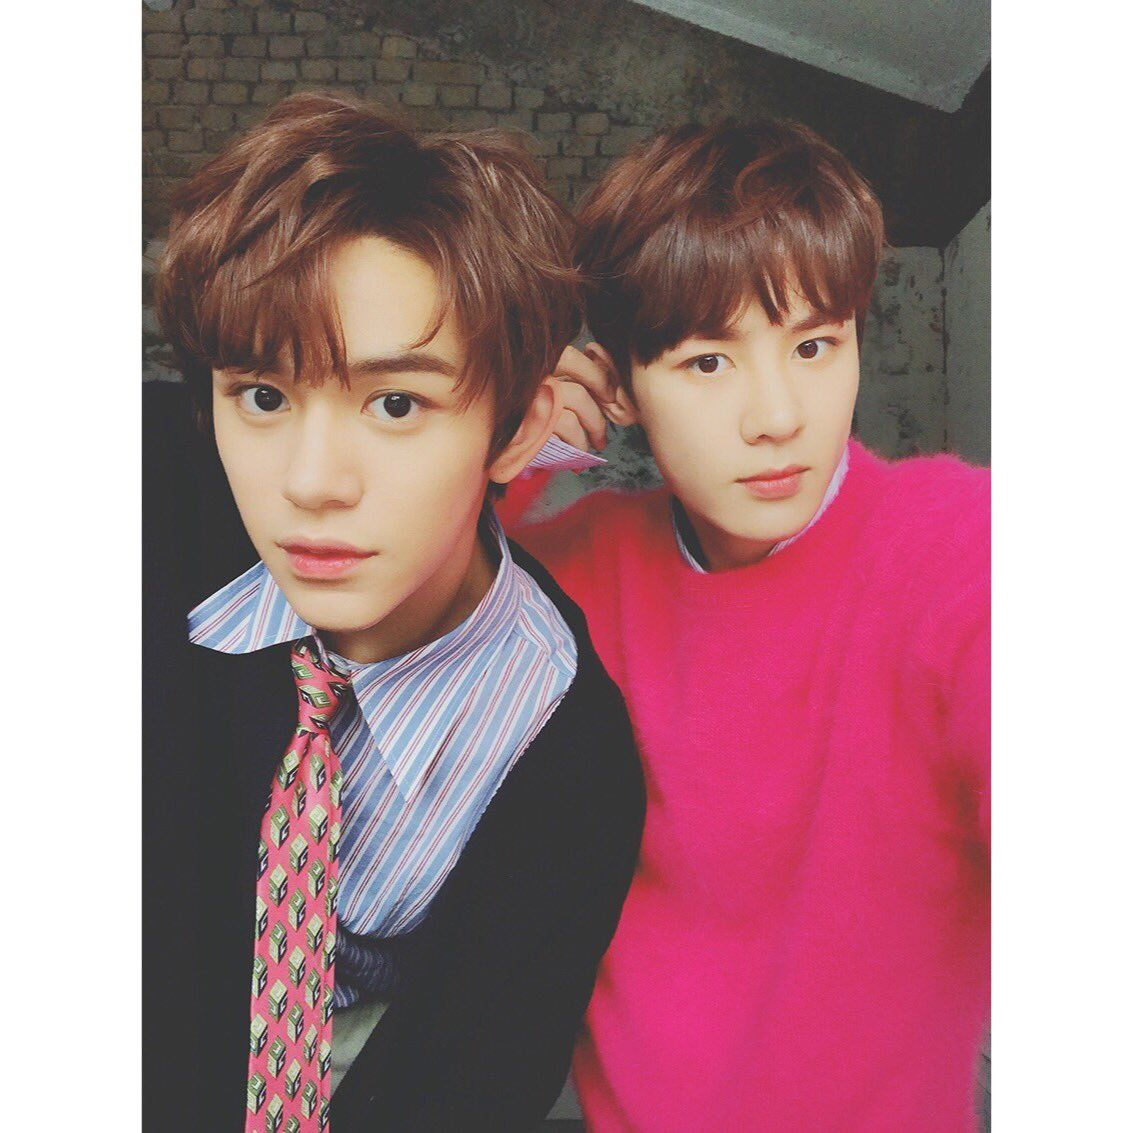 Jungwoo Lucas Nct Nct2018 Nctu N C T T NCT